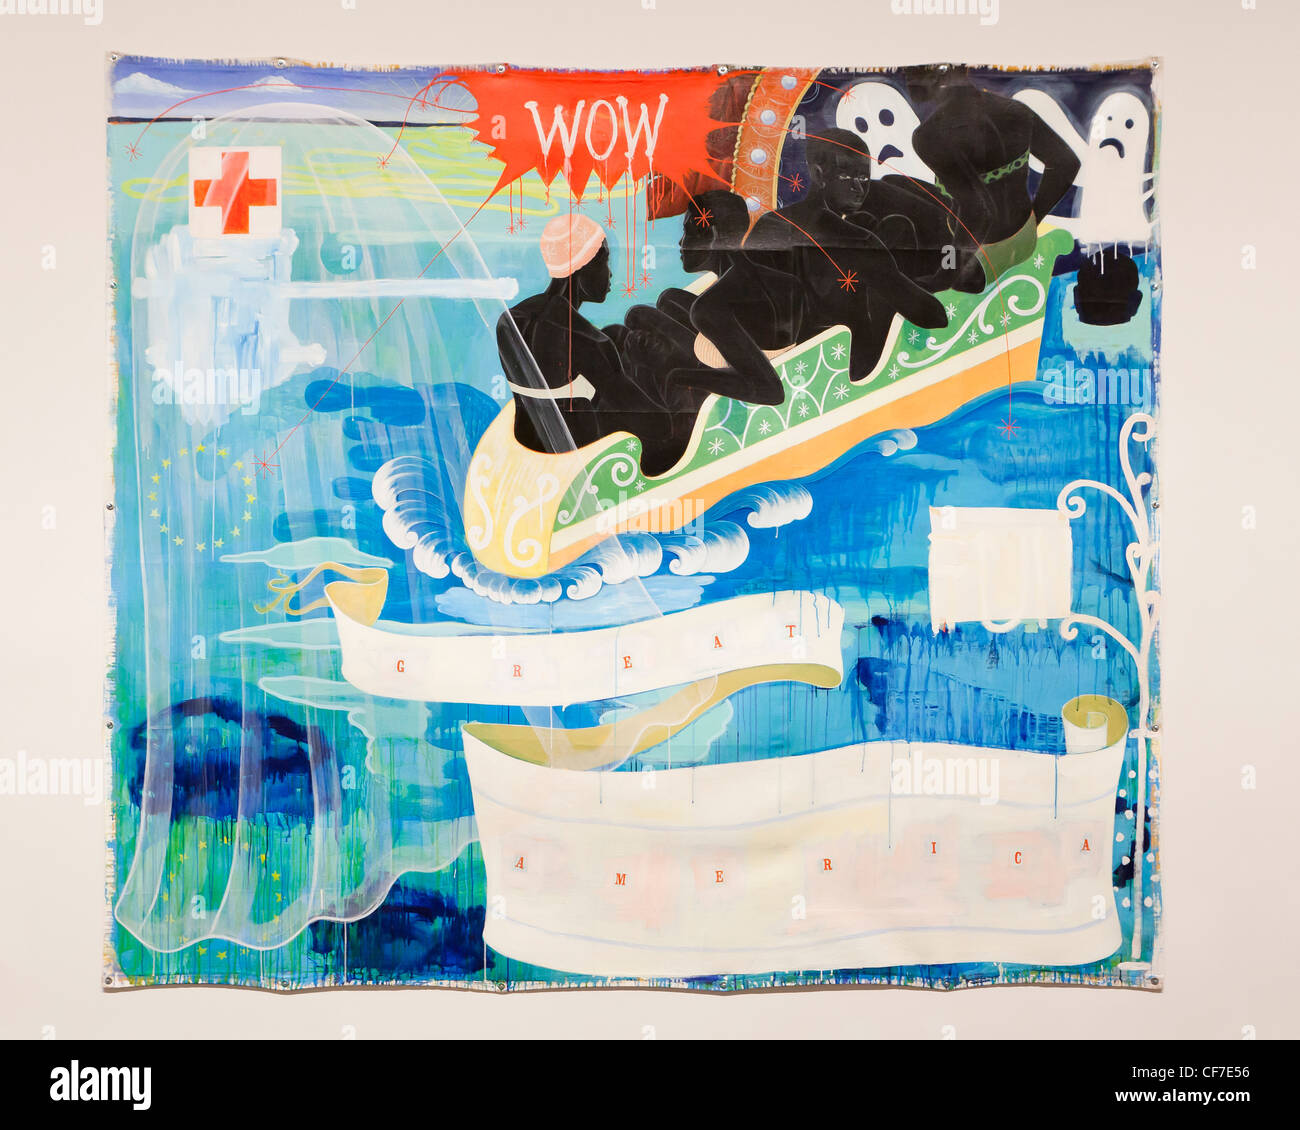 'Great America' 1994 Kerry James Marshall - acrylic and collage on canvas - Stock Image